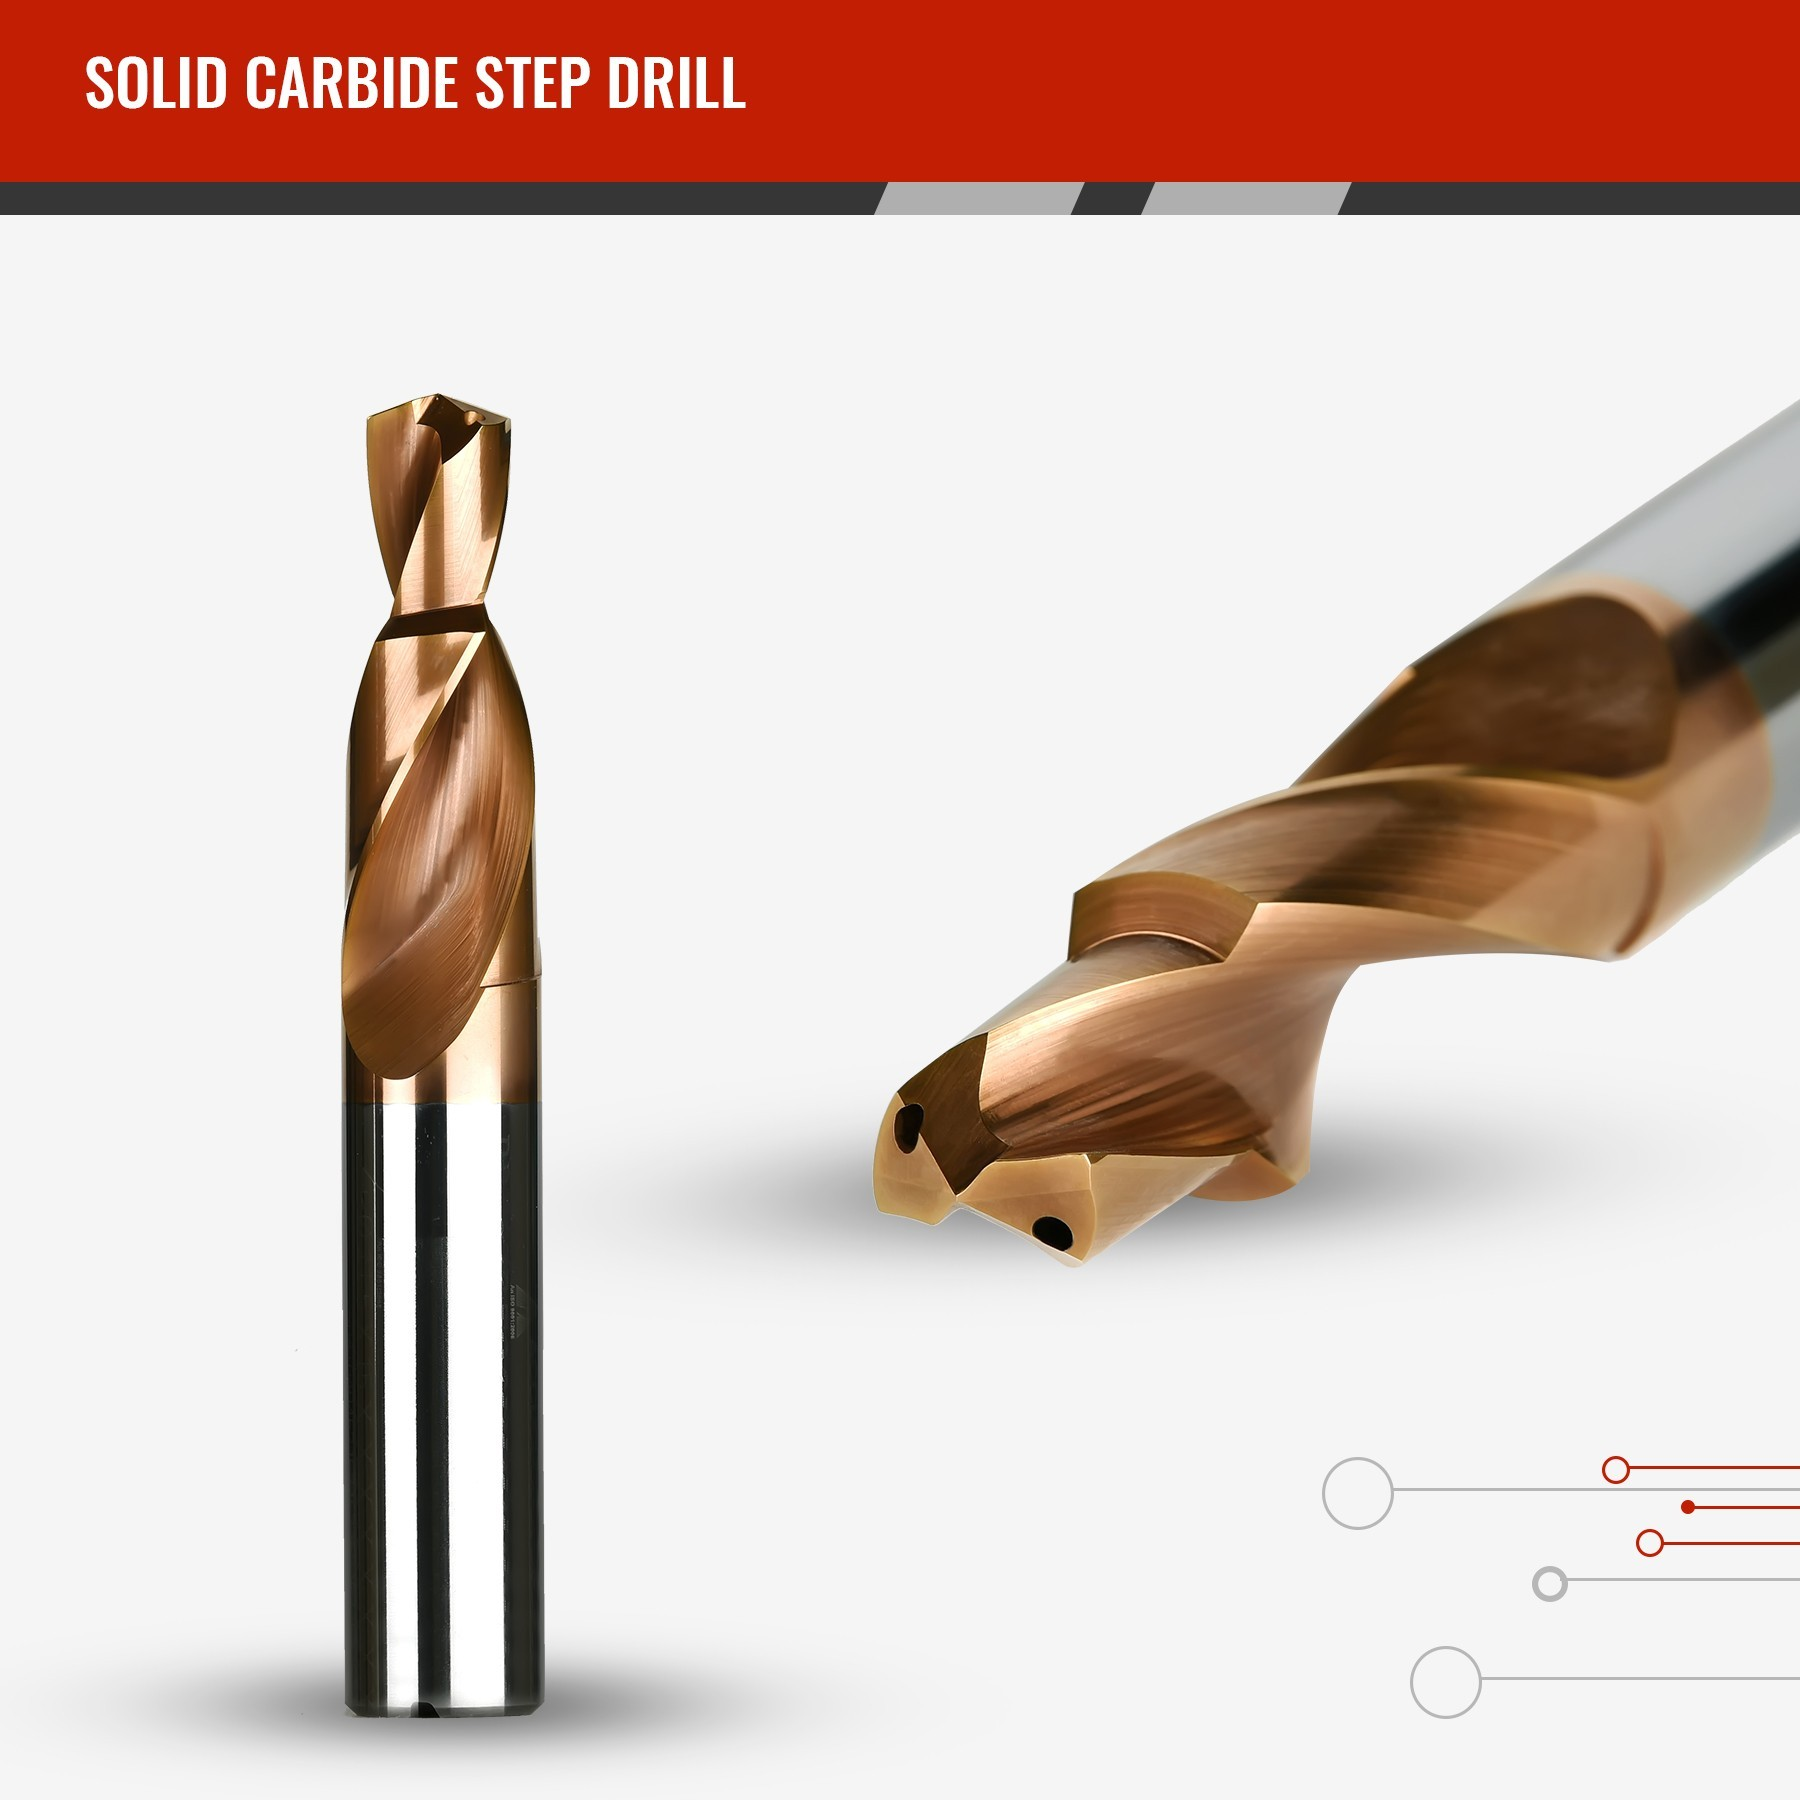 Solid Carbide Step Drill